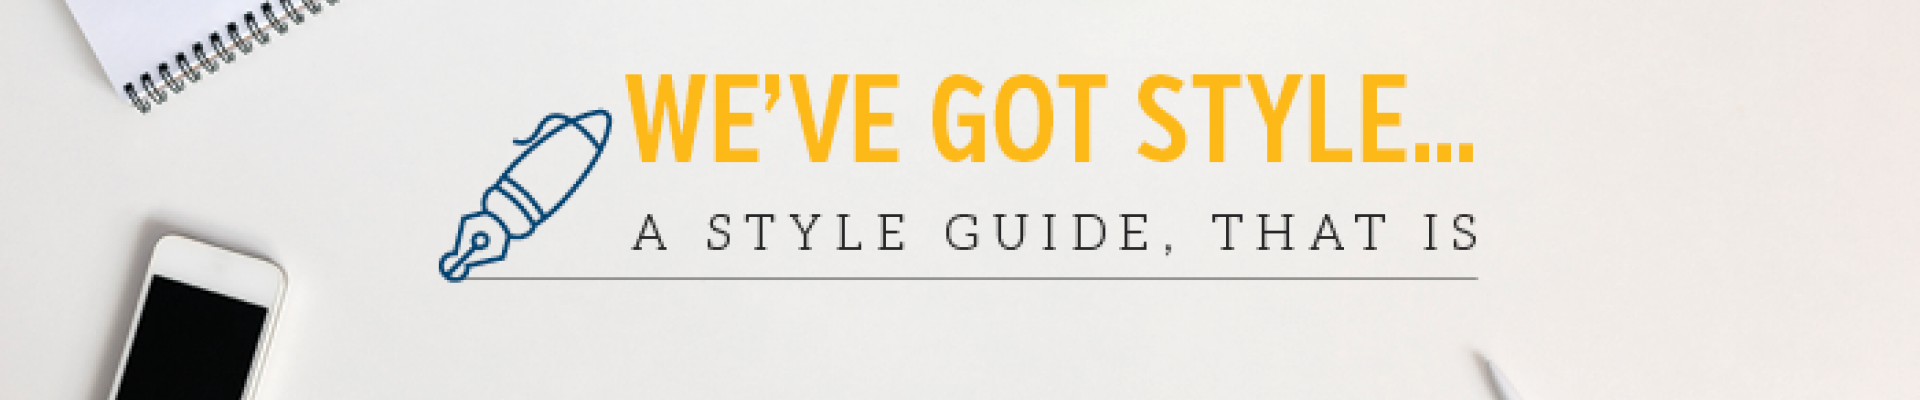 We've Got Style…a Style Guide, That Is